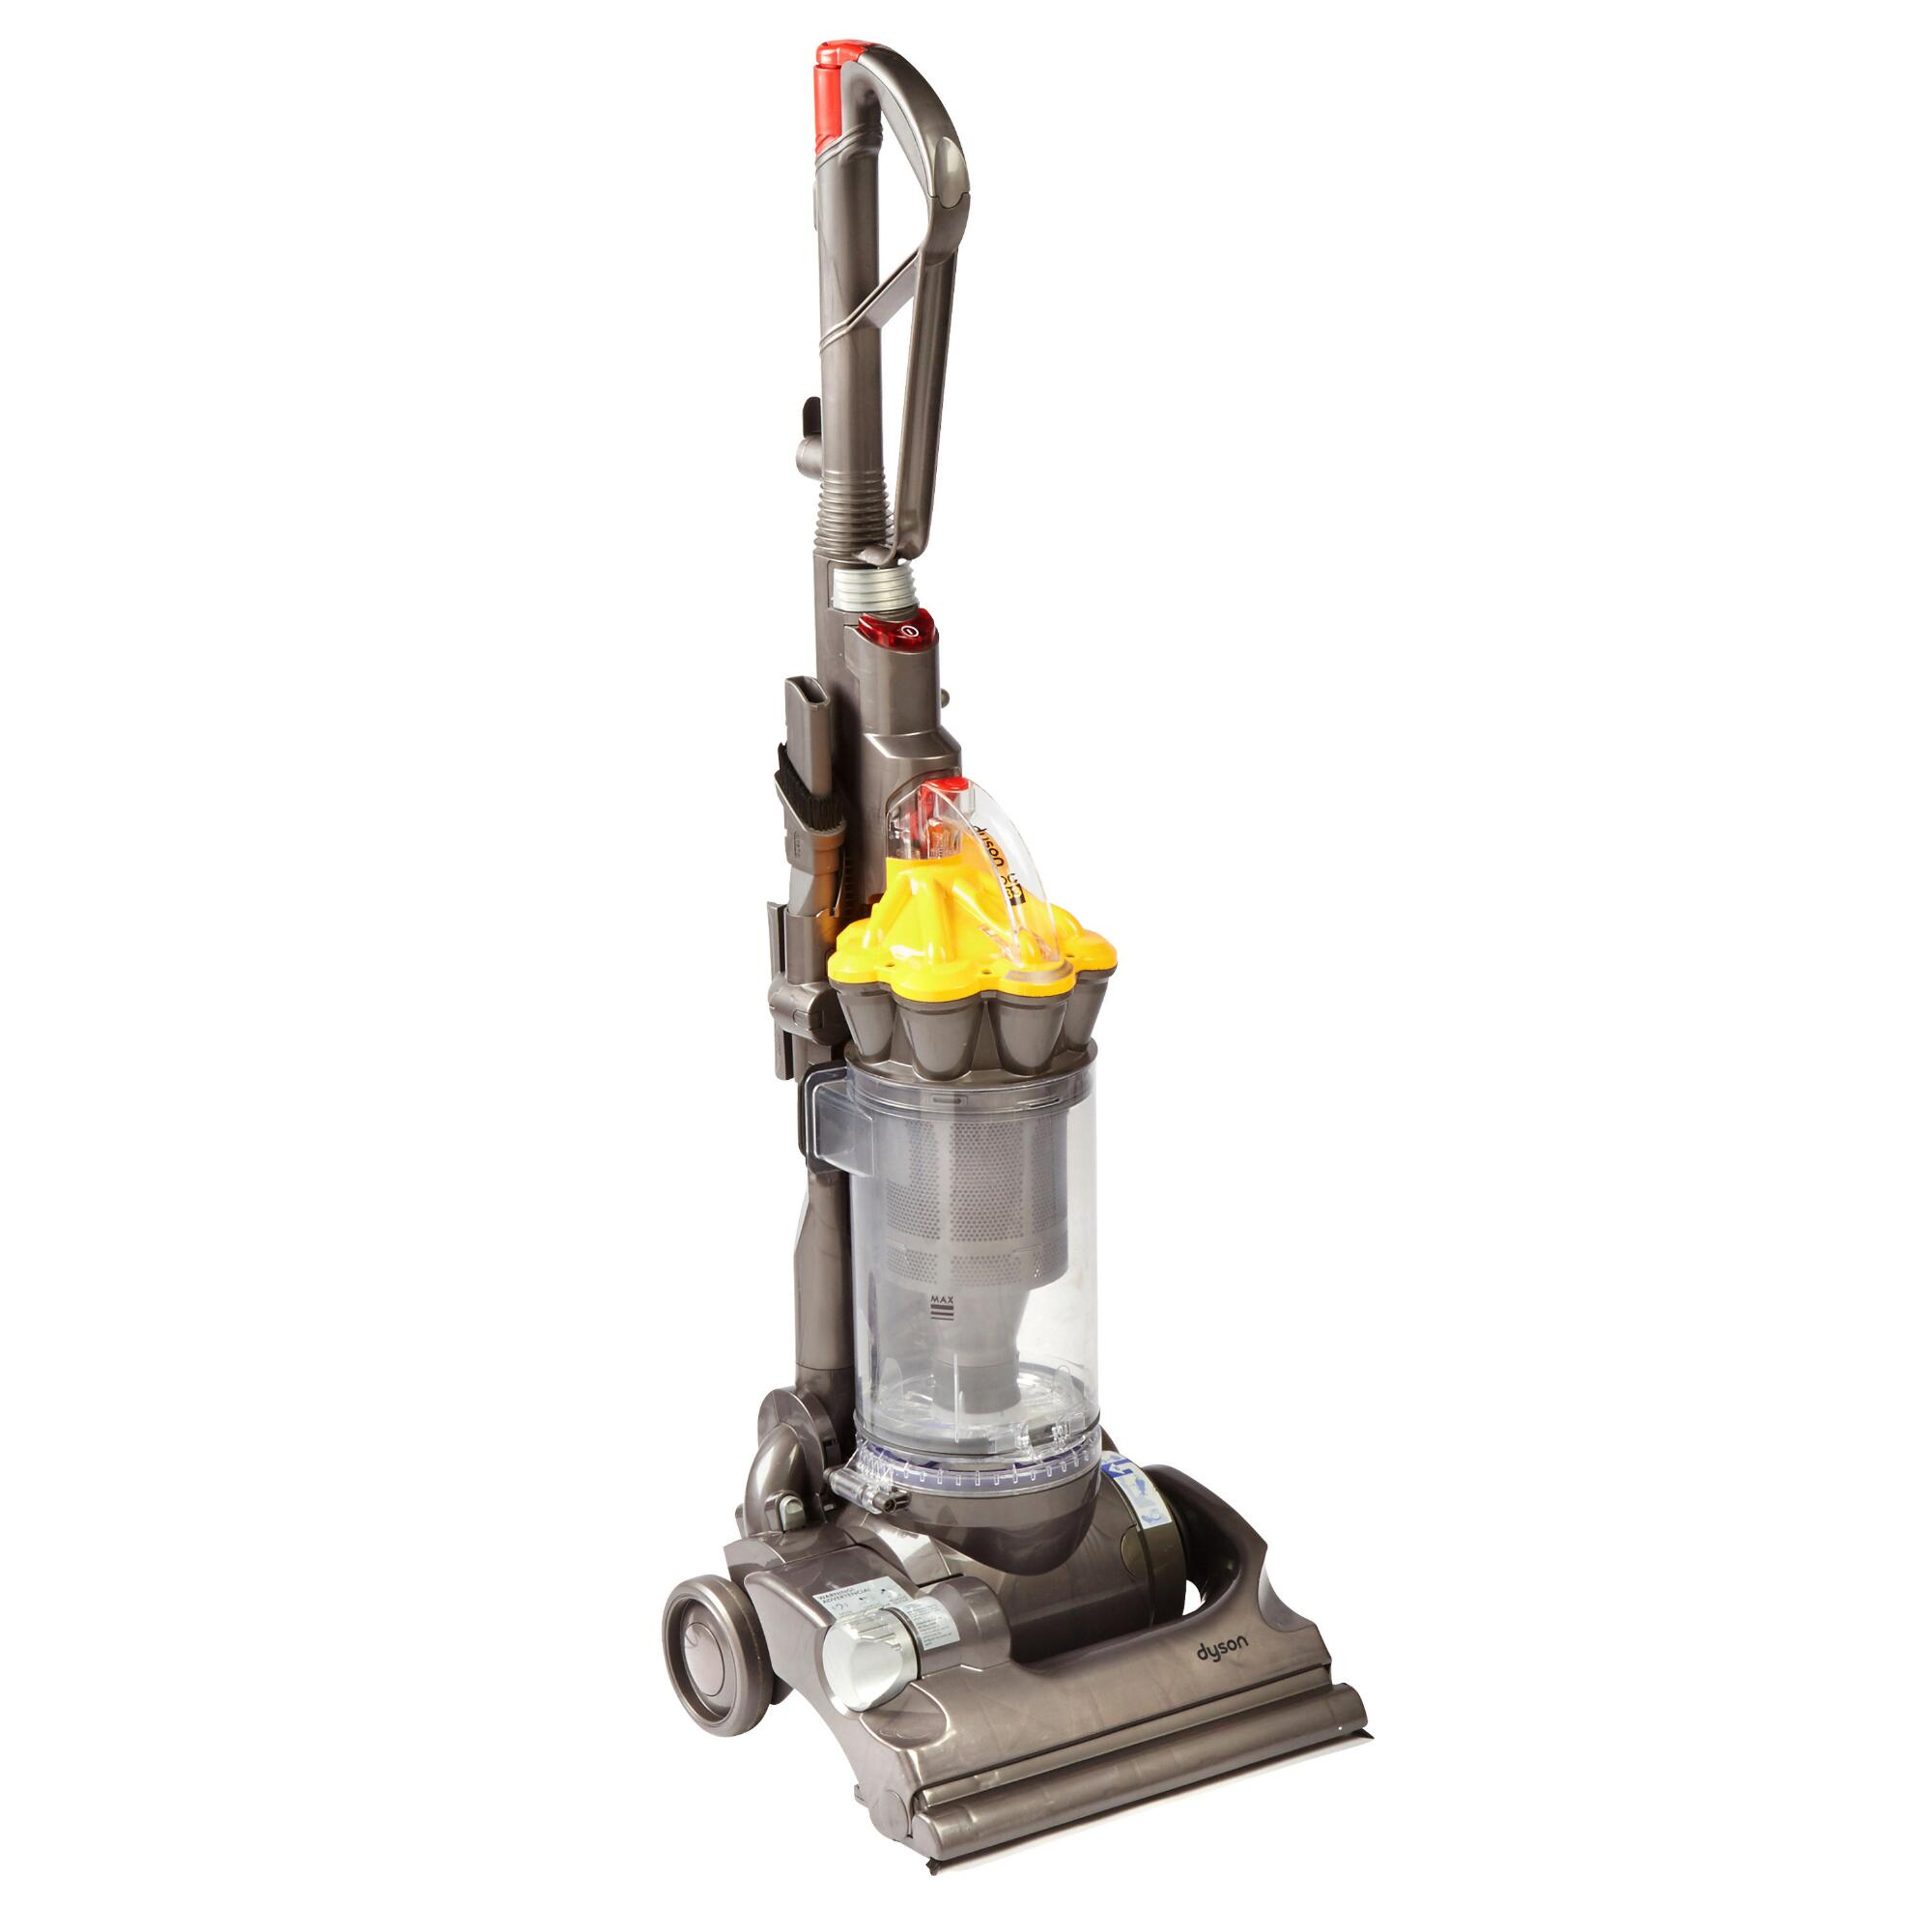 Refurbished Dyson Upright Vacuum Cleaners